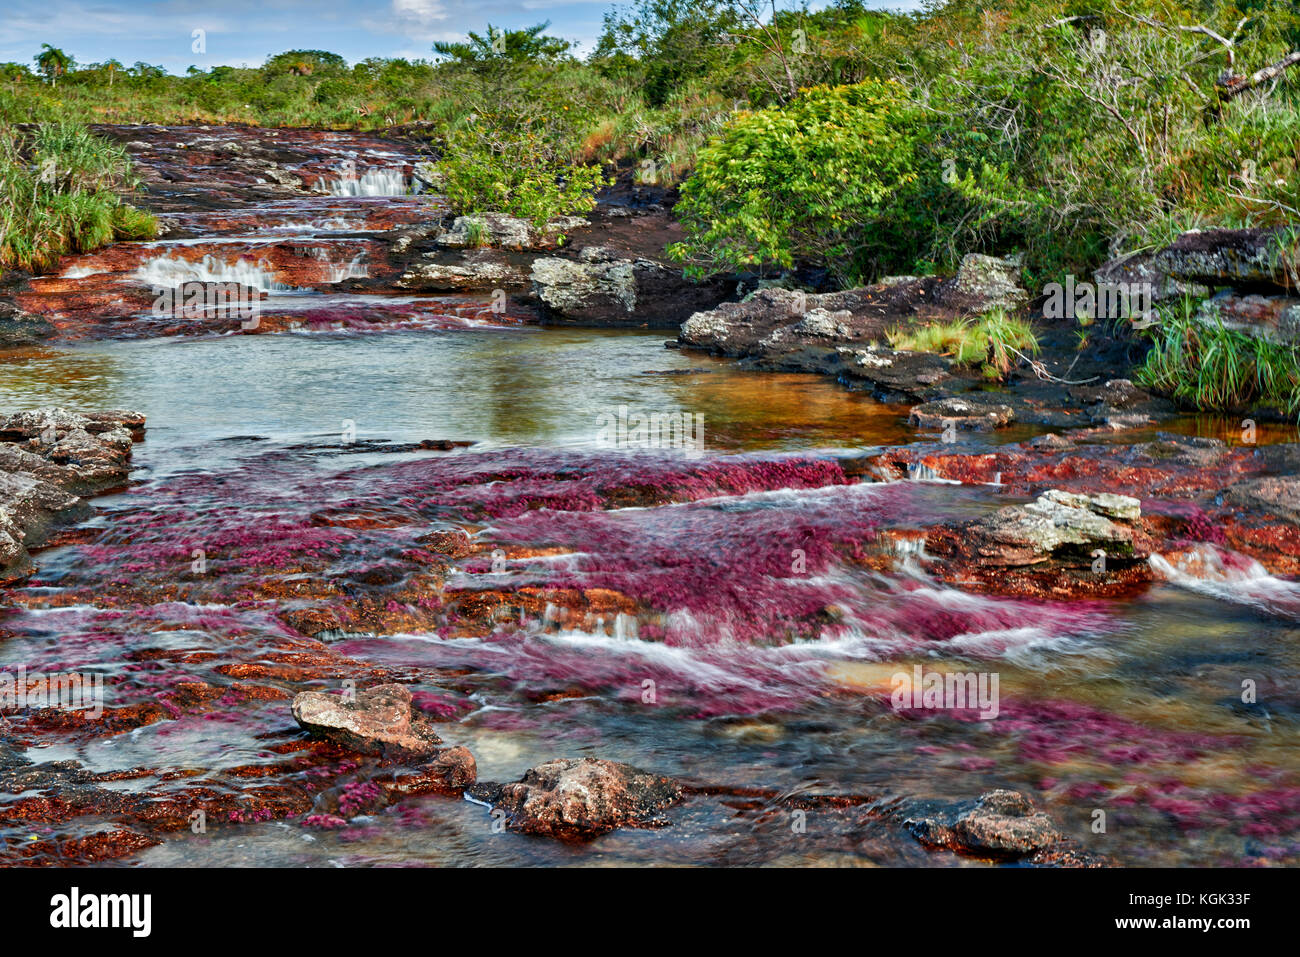 Cano Cristalitos near Cano Cristales called the 'River of Five Colors' or the 'Liquid Rainbow', - Stock Image